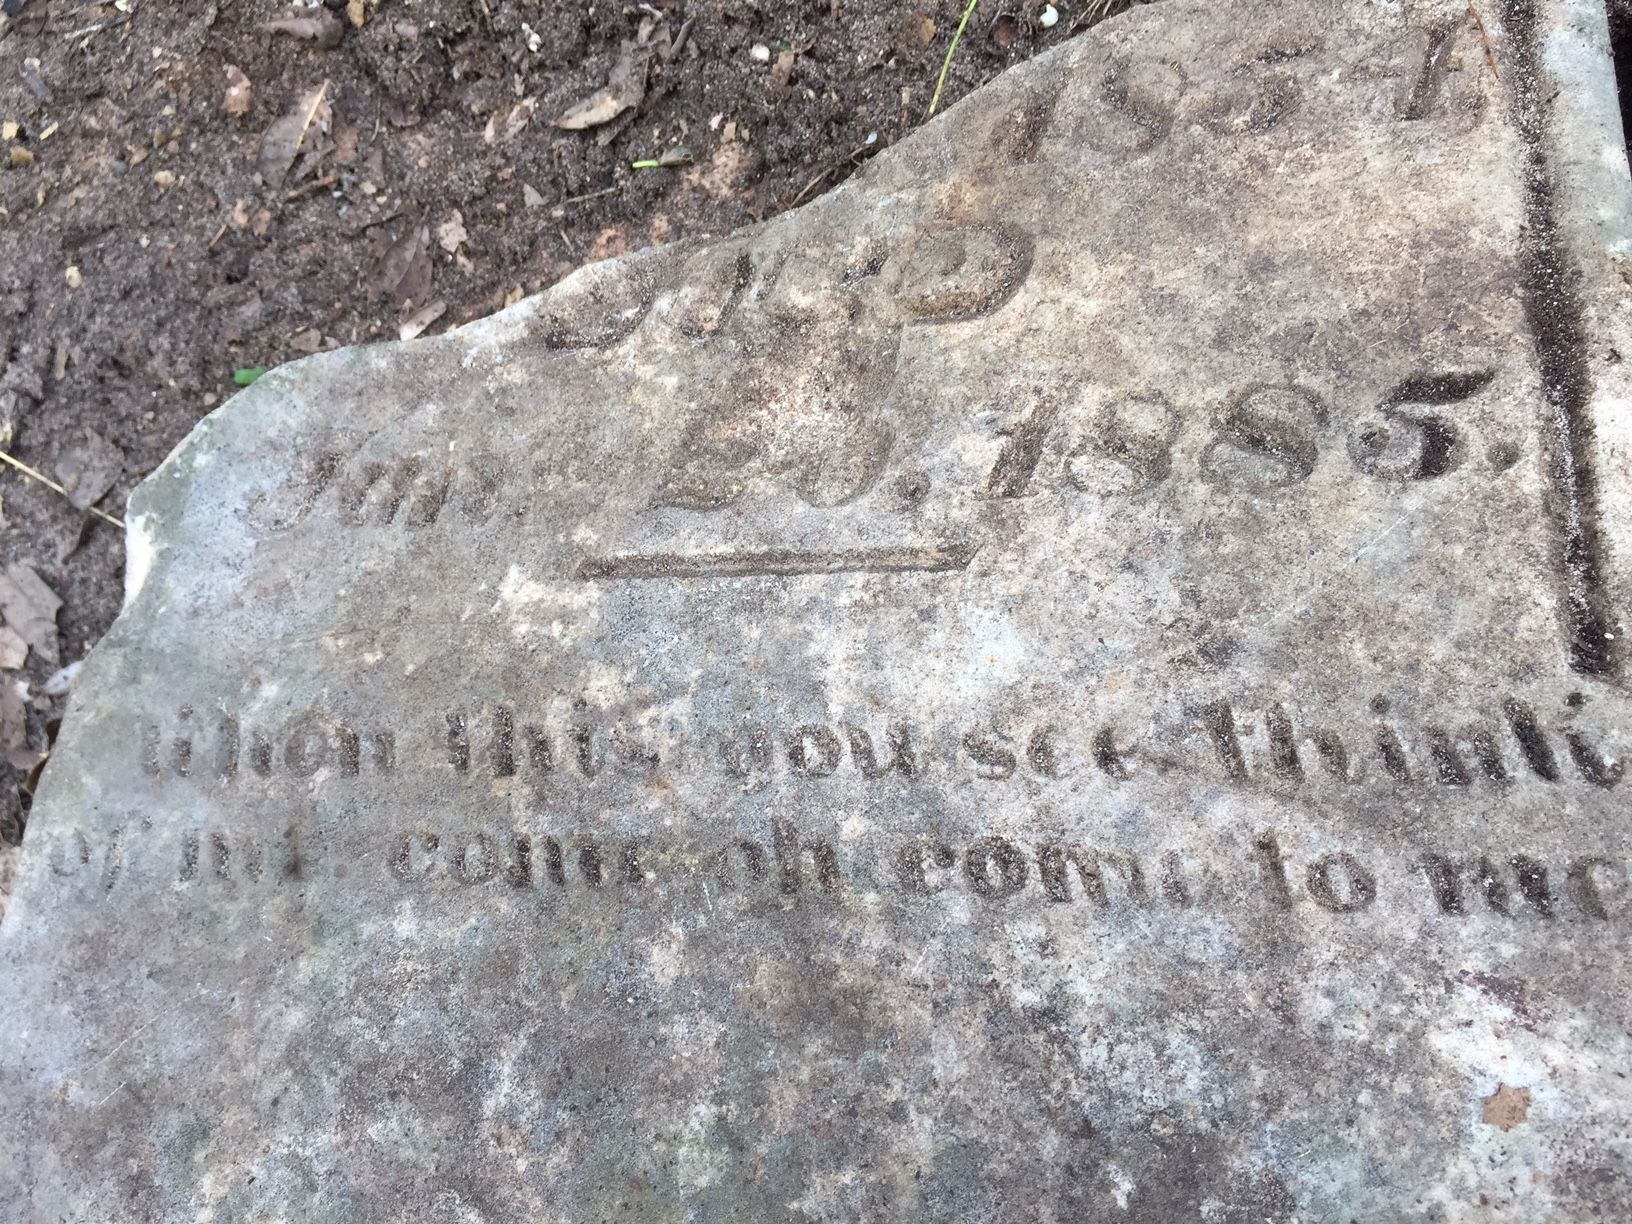 Just one of the many mysteries at Mt. Zion includes this remainder of a tombstone near the Morriss family plot